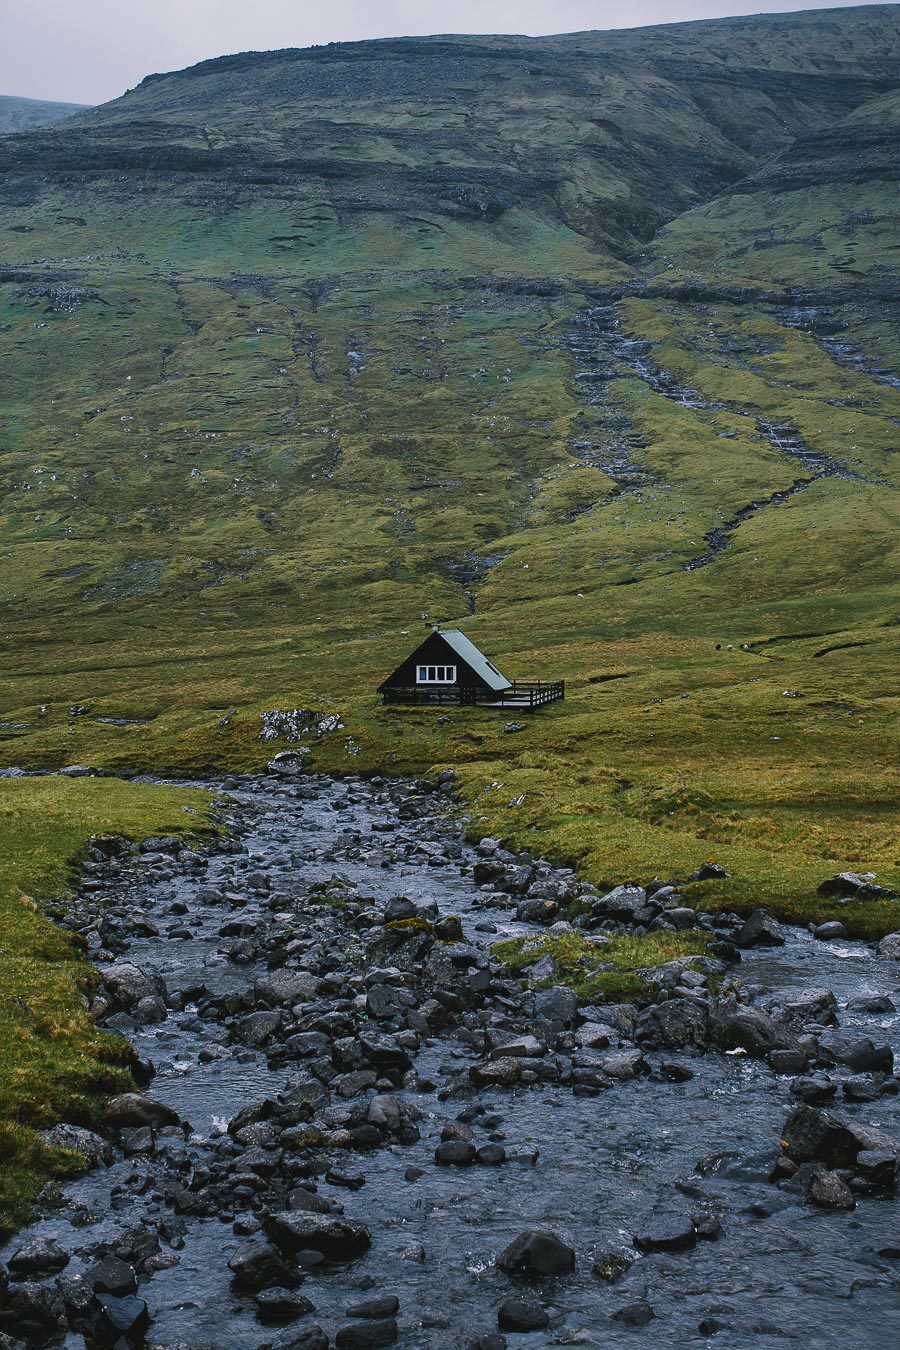 Triangle house by a small river